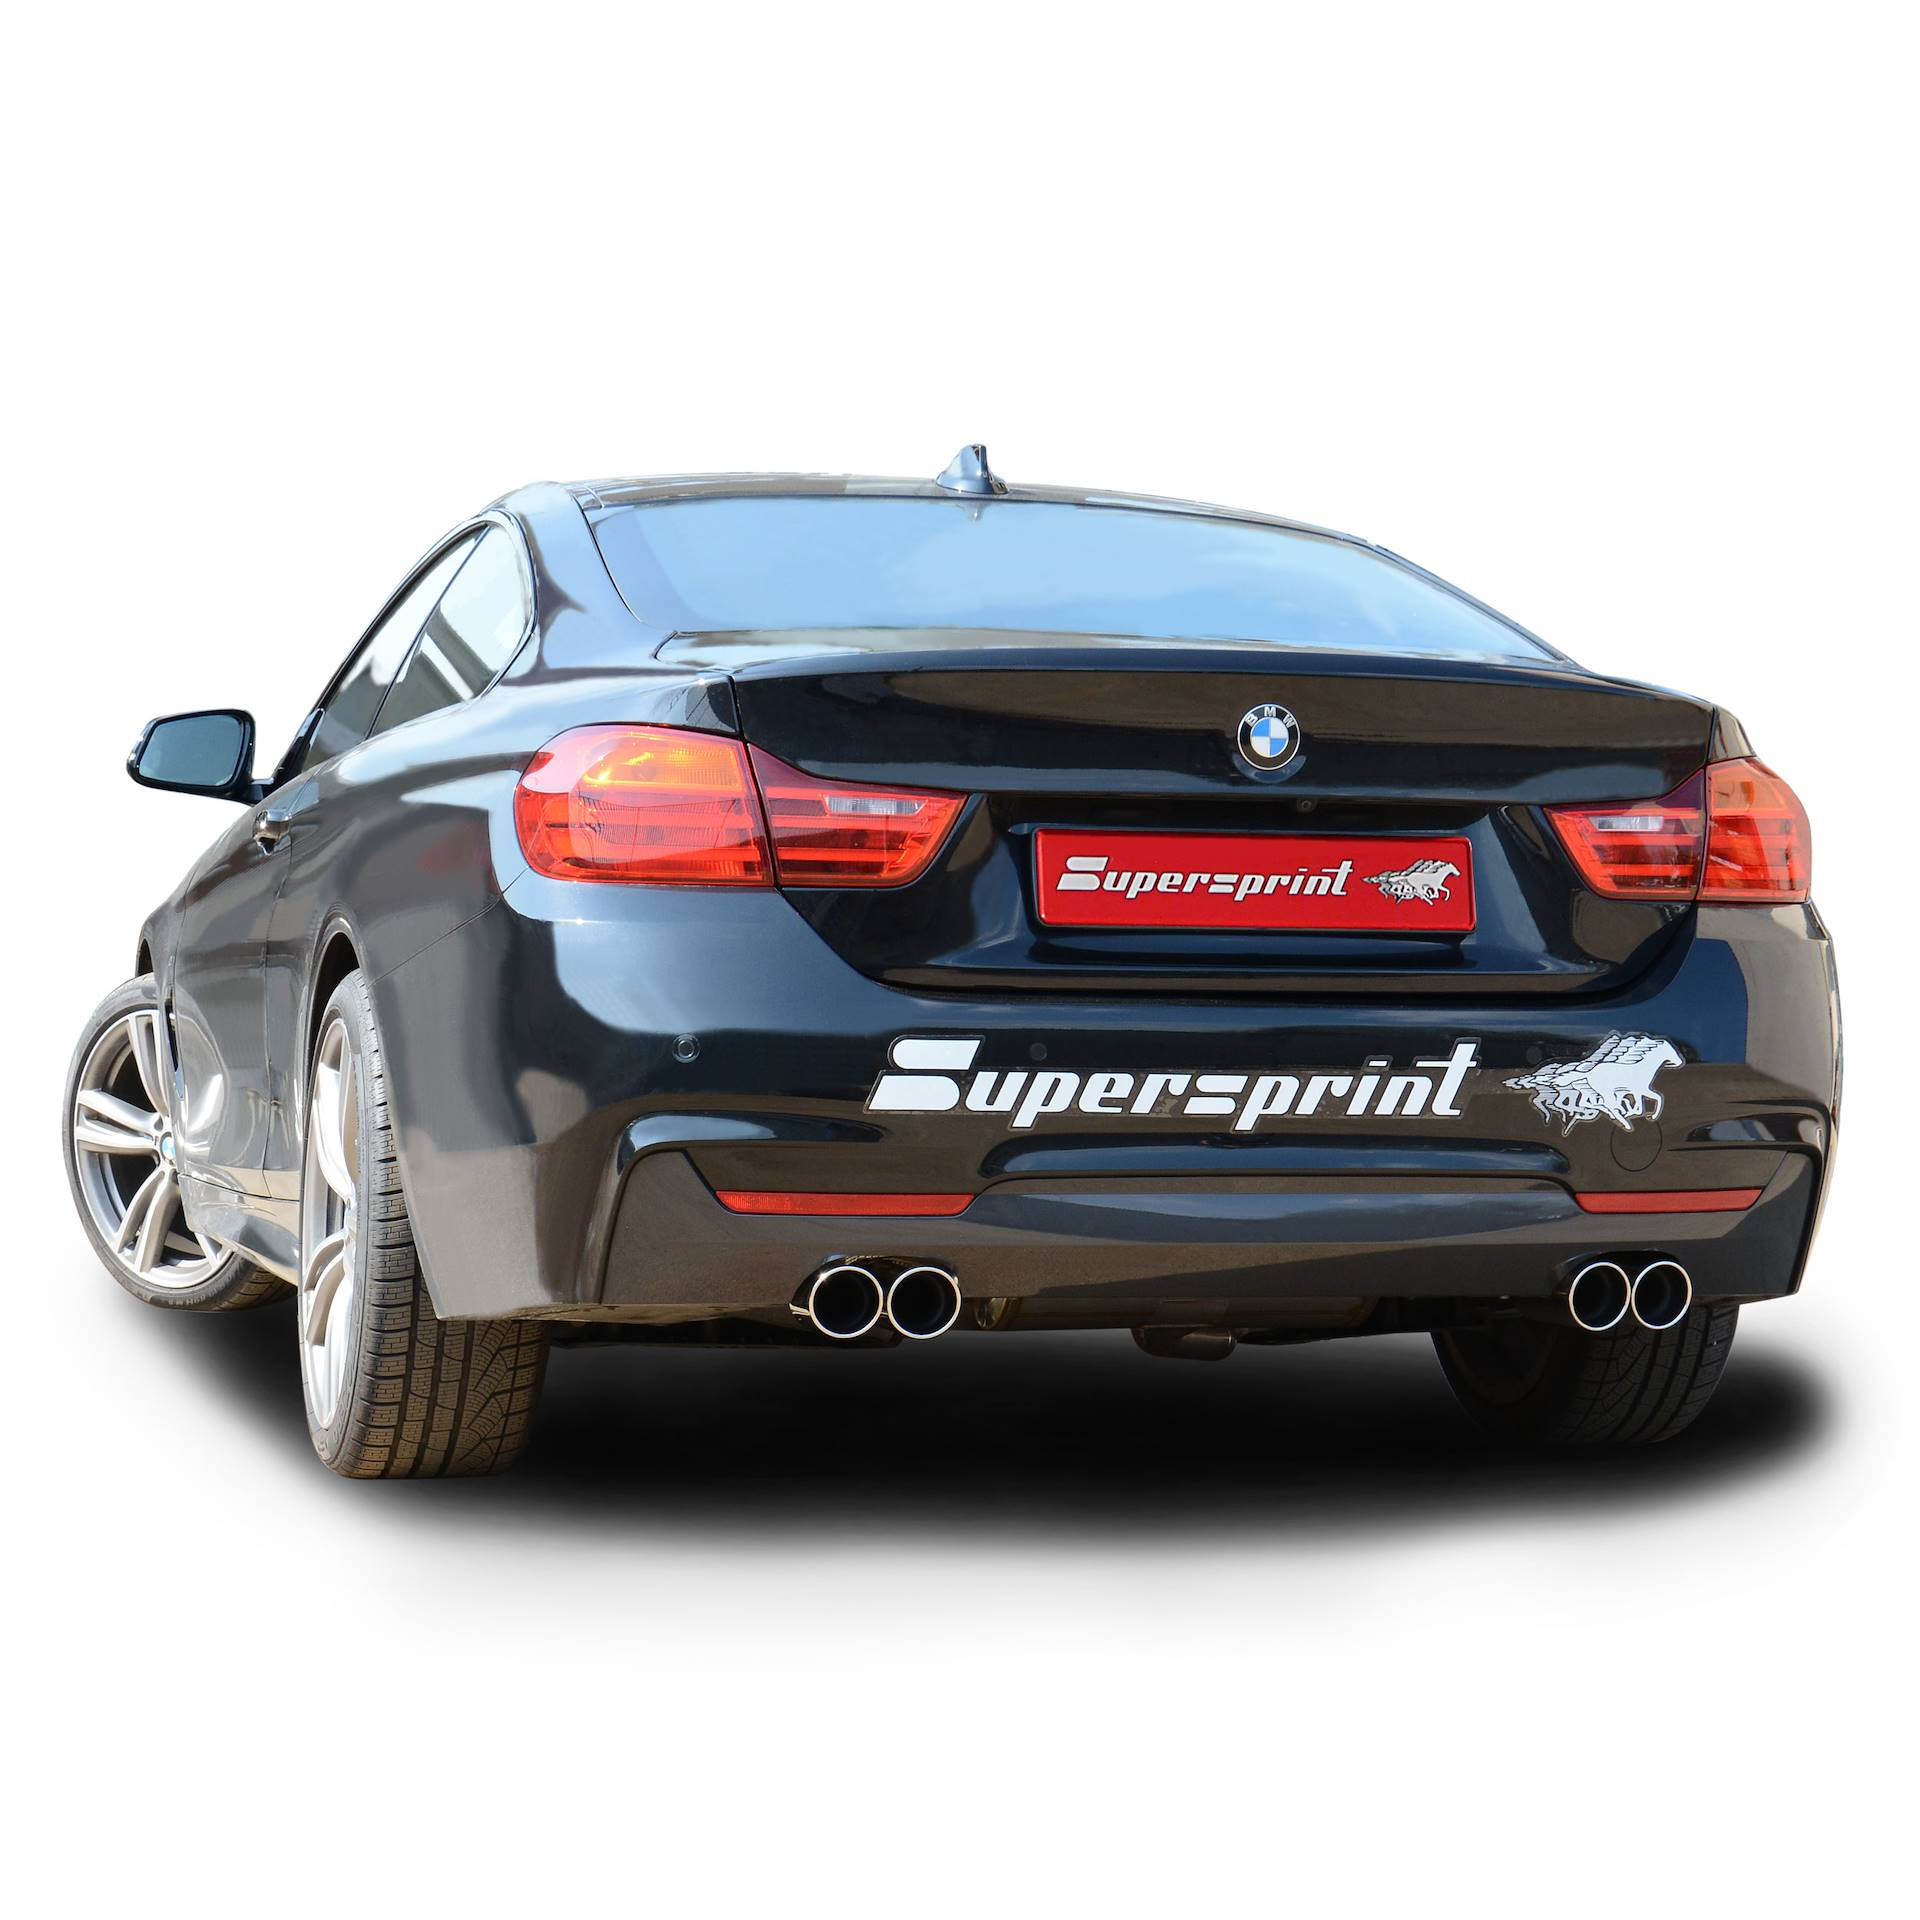 BMW - BMW F32 Coupè 428i 2.0T (N20 245 PS) 2013 ->